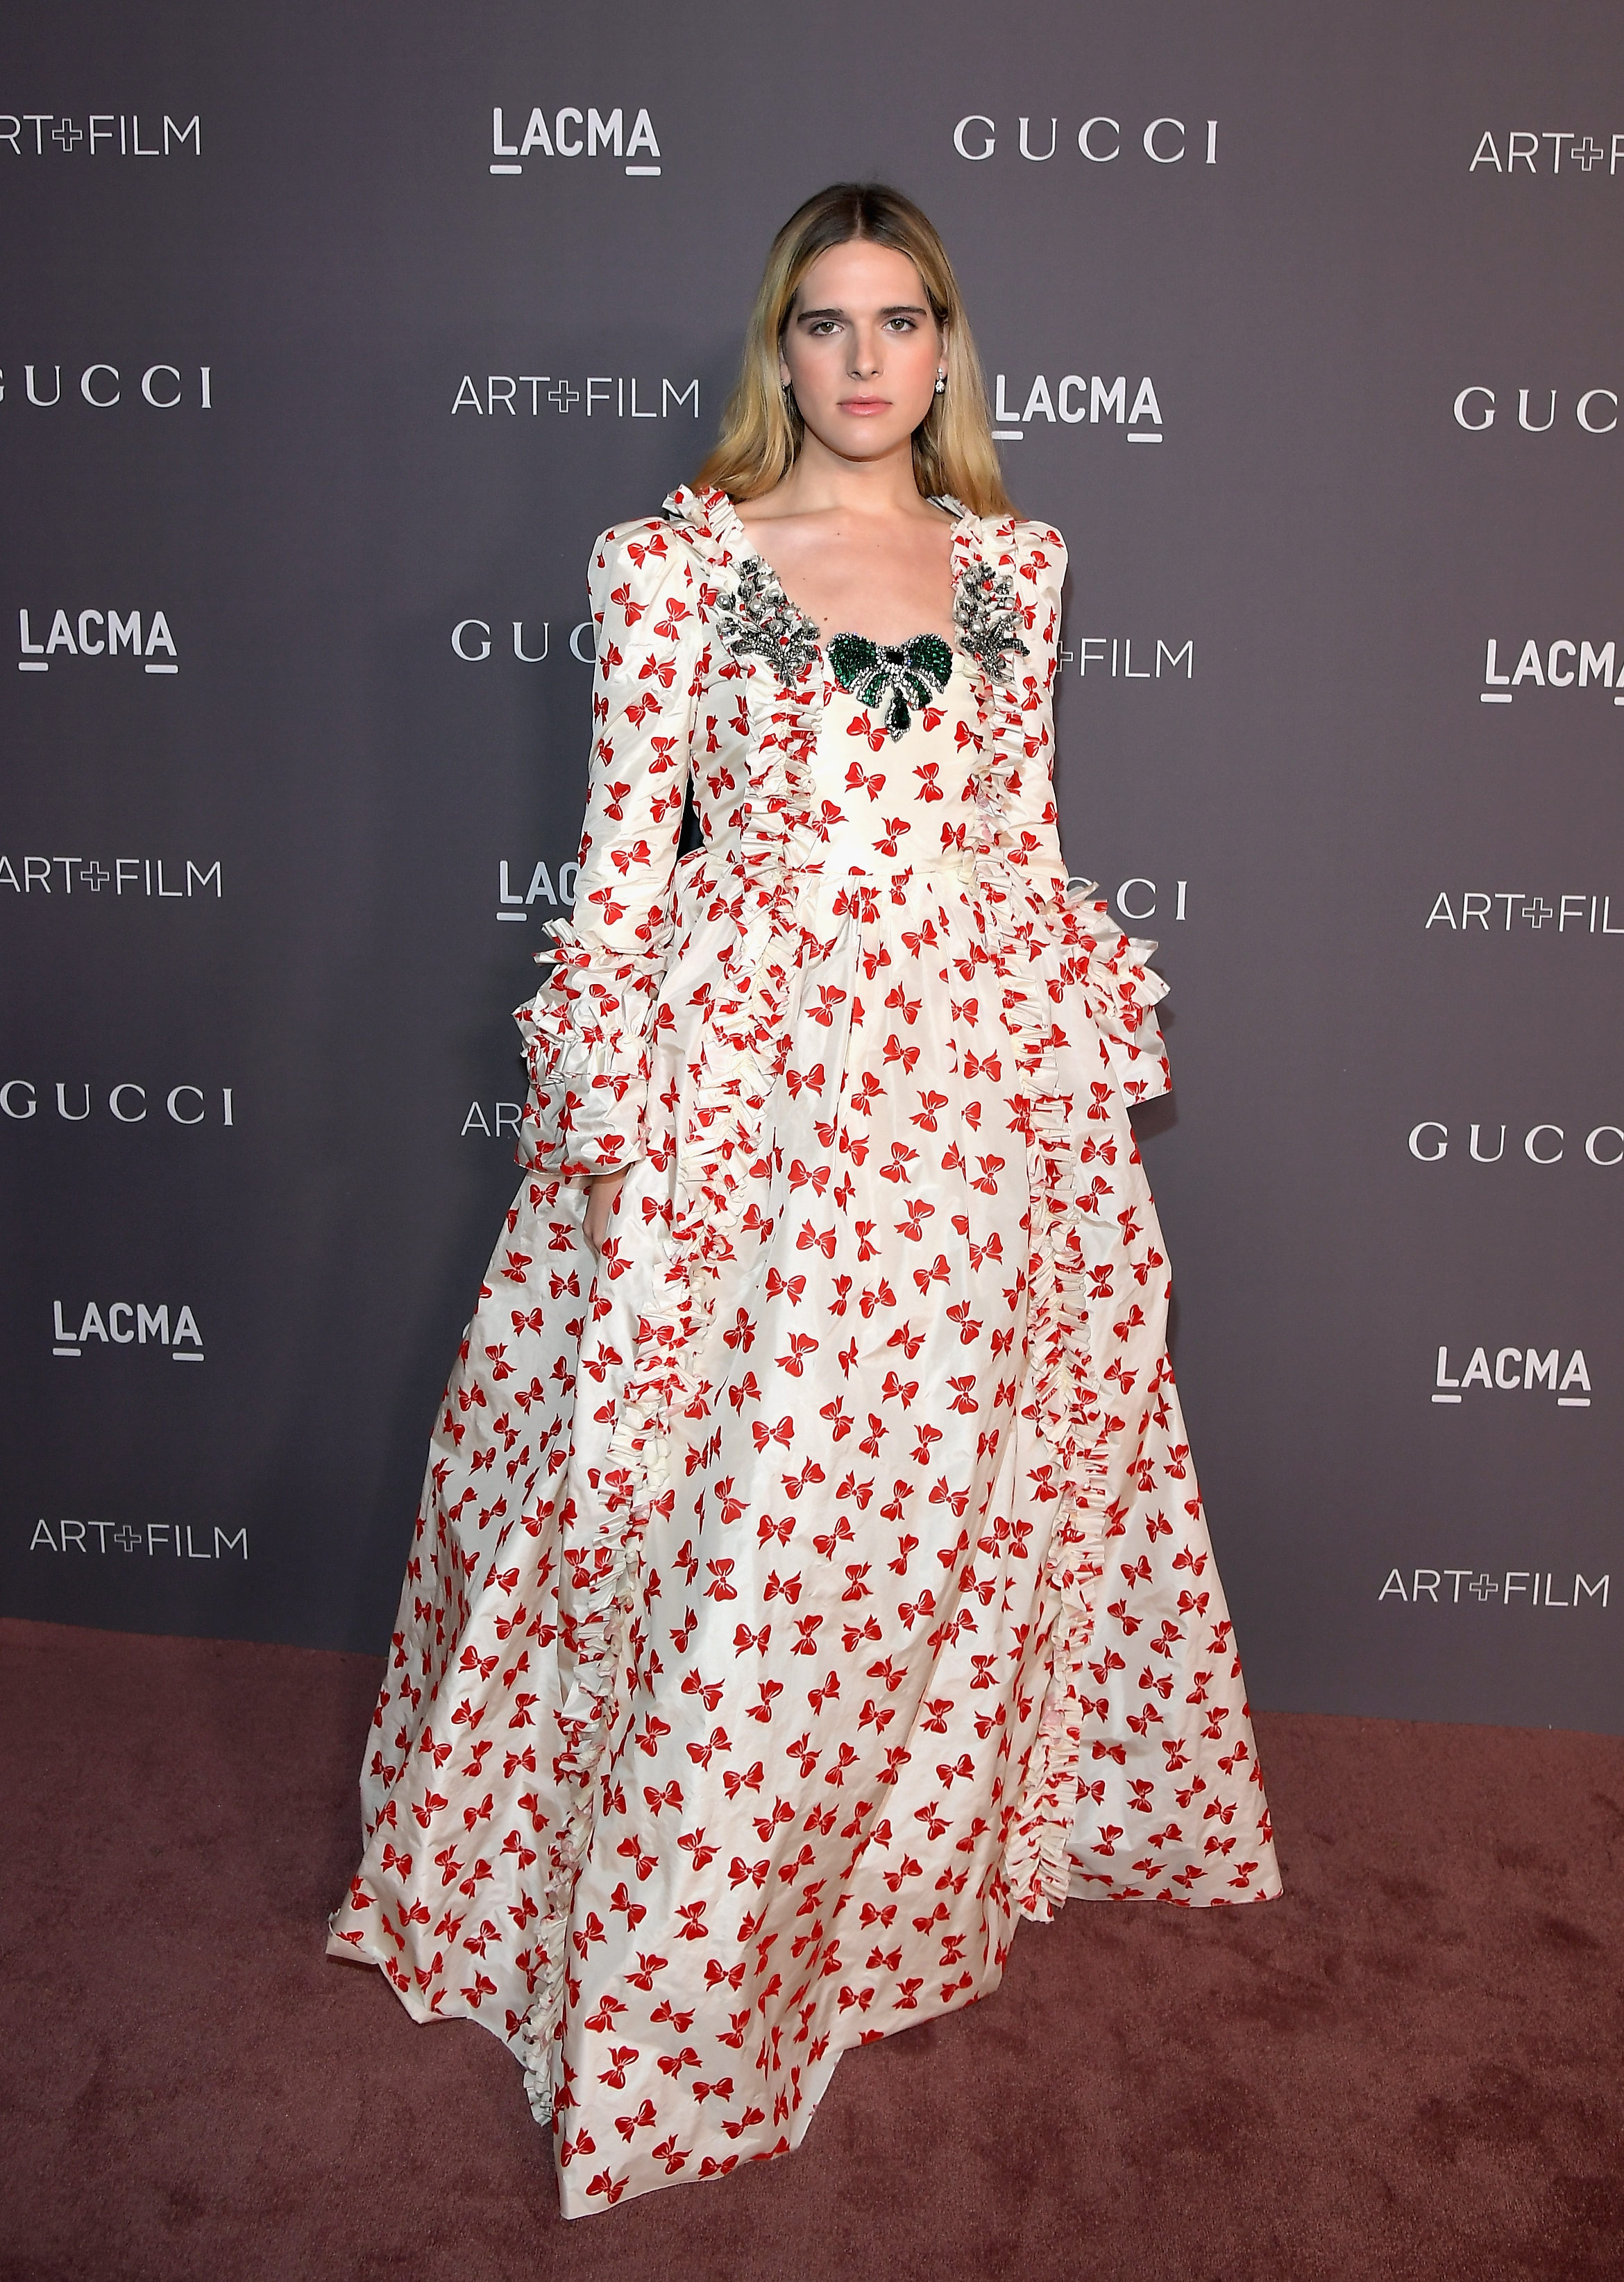 LOS ANGELES, CA - NOVEMBER 04: Model Hari Nef, wearing Gucci, attends the 2017 LACMA Art + Film Gala Honoring Mark Bradford and George Lucas presented by Gucci at LACMA on November 4, 2017 in Los Angeles, California. (Photo by Charley Gallay/Getty Images for LACMA)